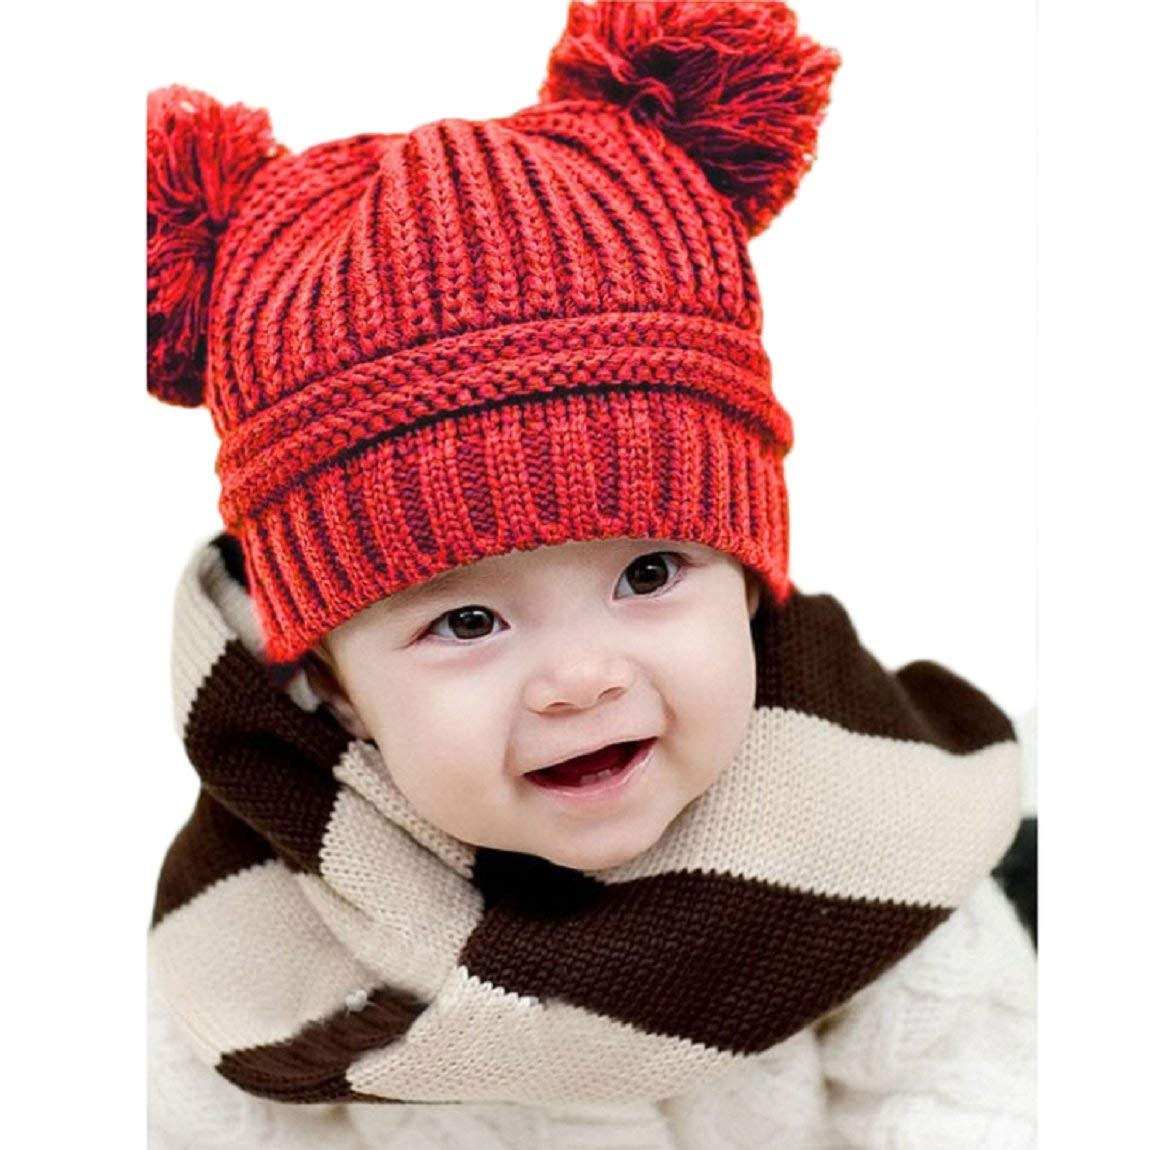 bbb104976b8 Get Quotations · DKmagic Cute Baby Kids Girls Boys Dual Balls Warm Winter  Knitted Beanie Cap Hat (Red